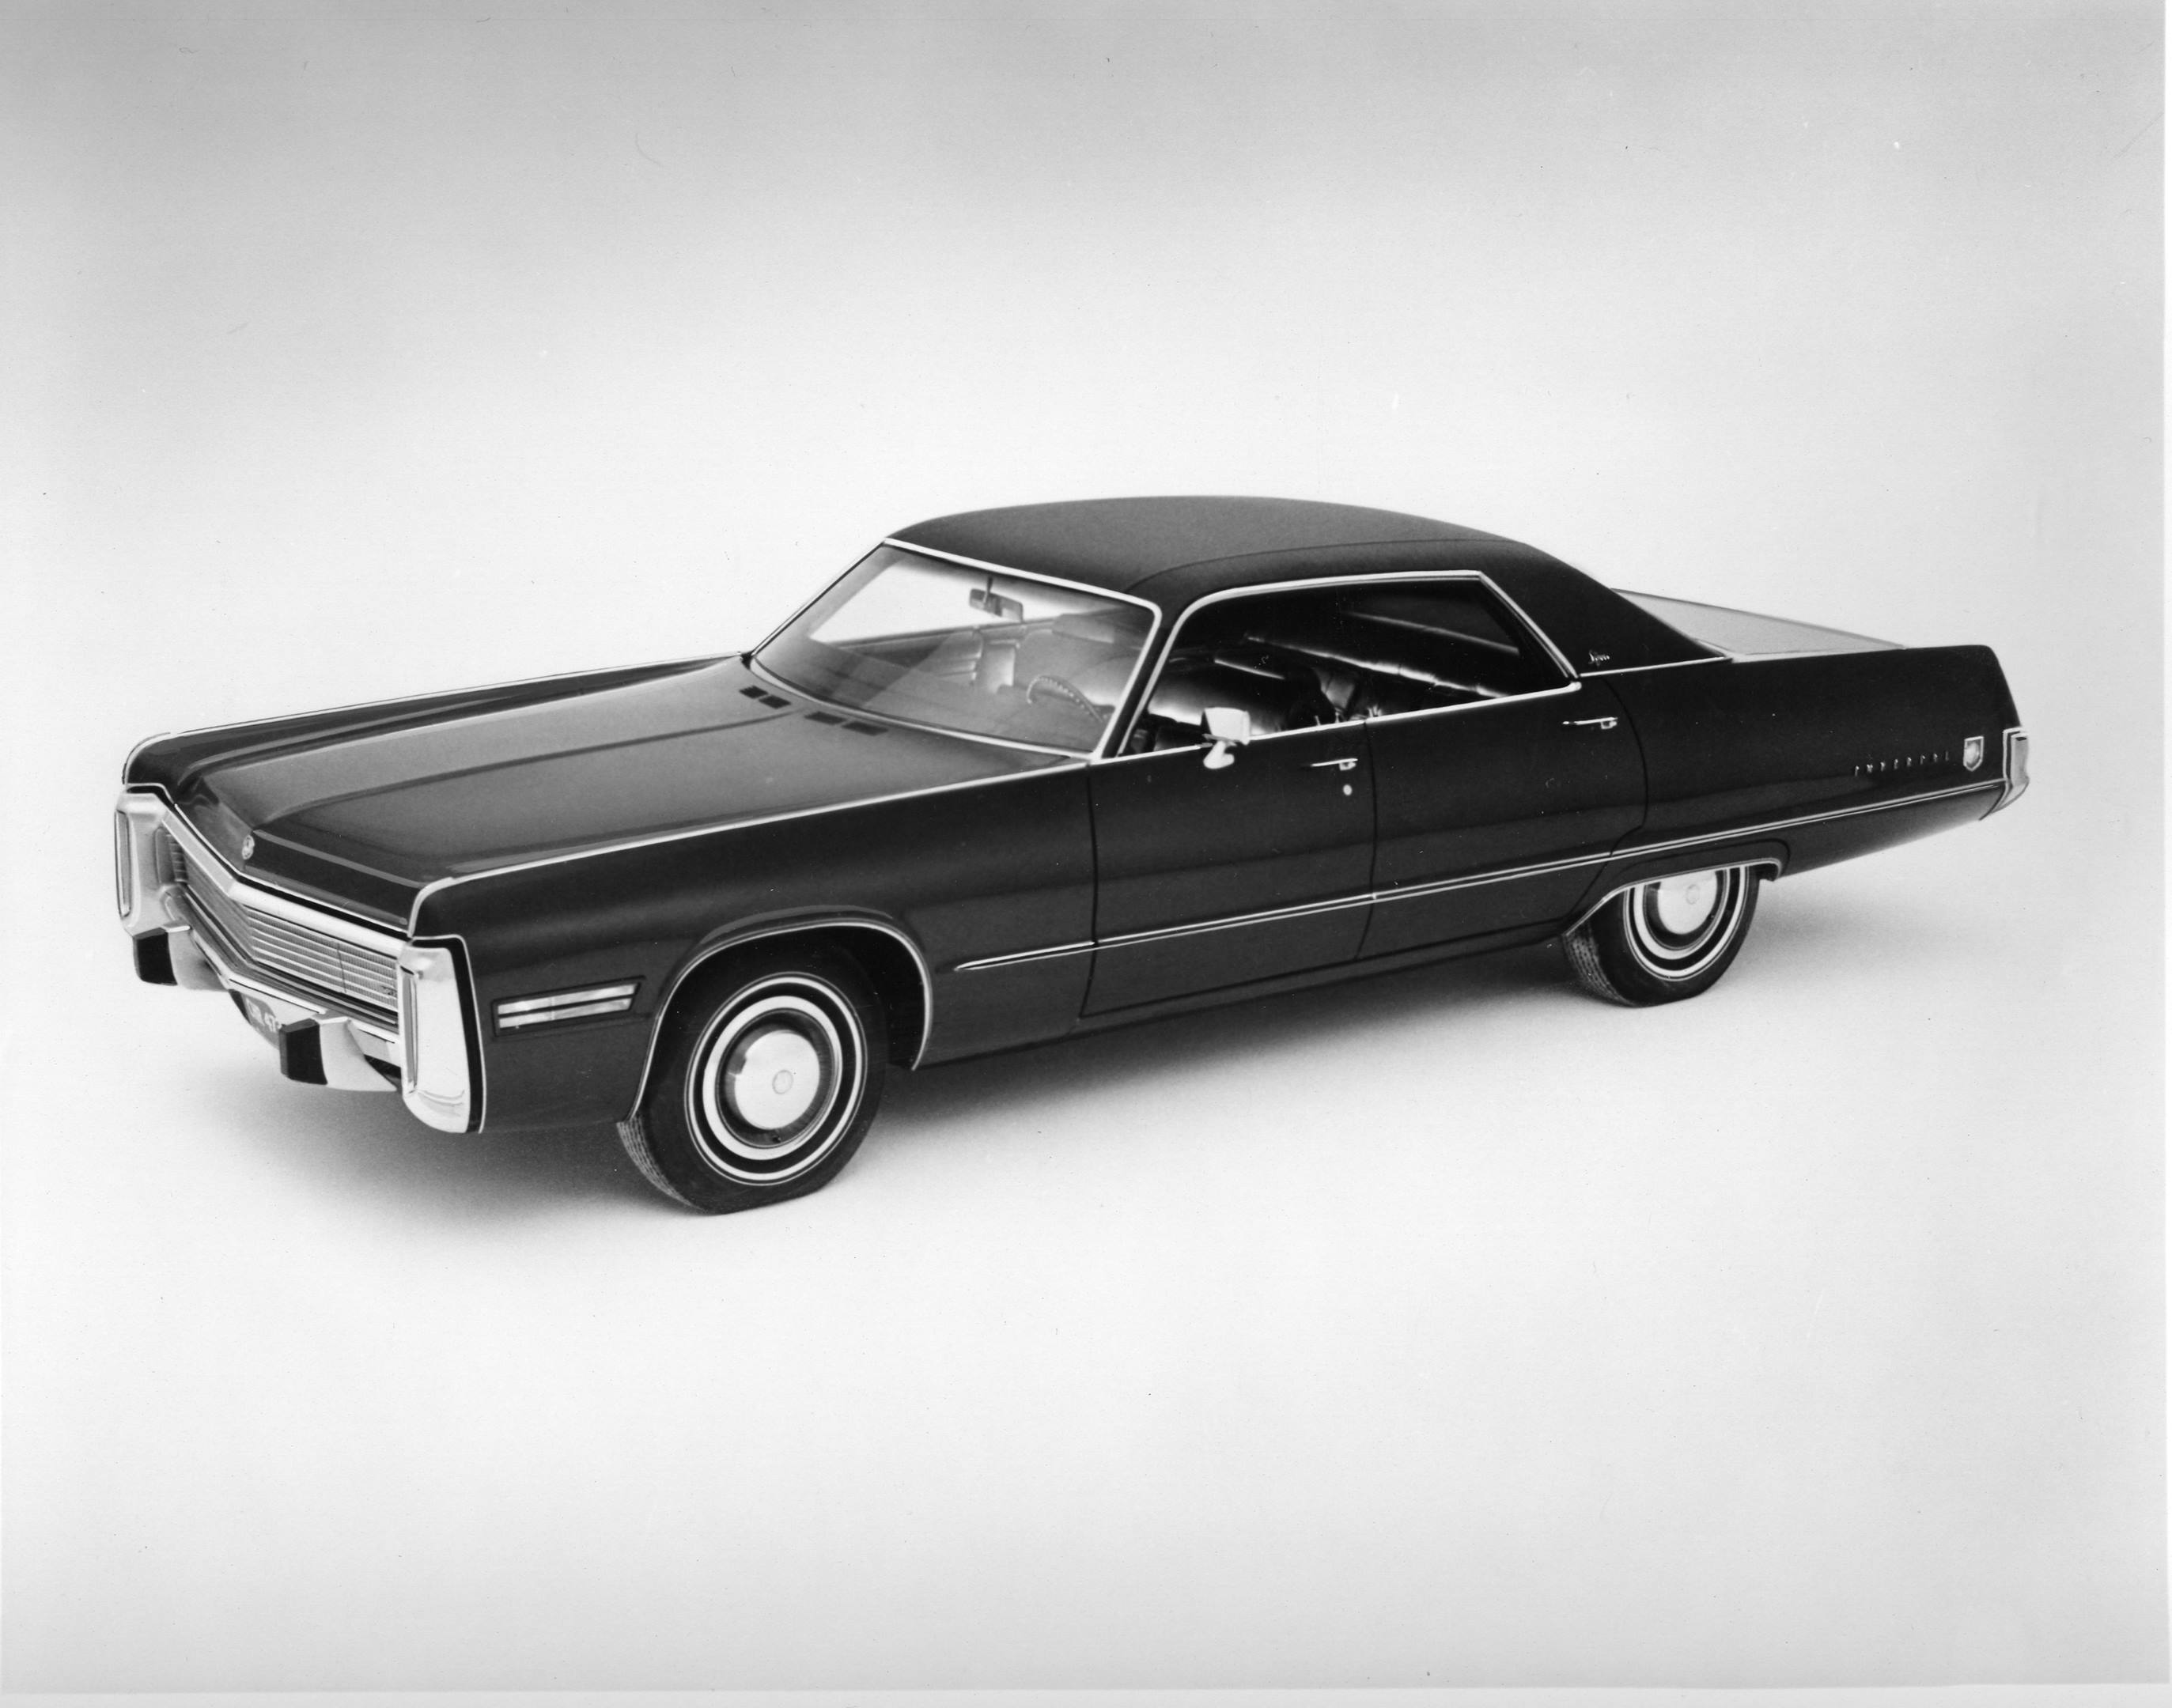 olf photo of a 1972 Chrysler Imperial